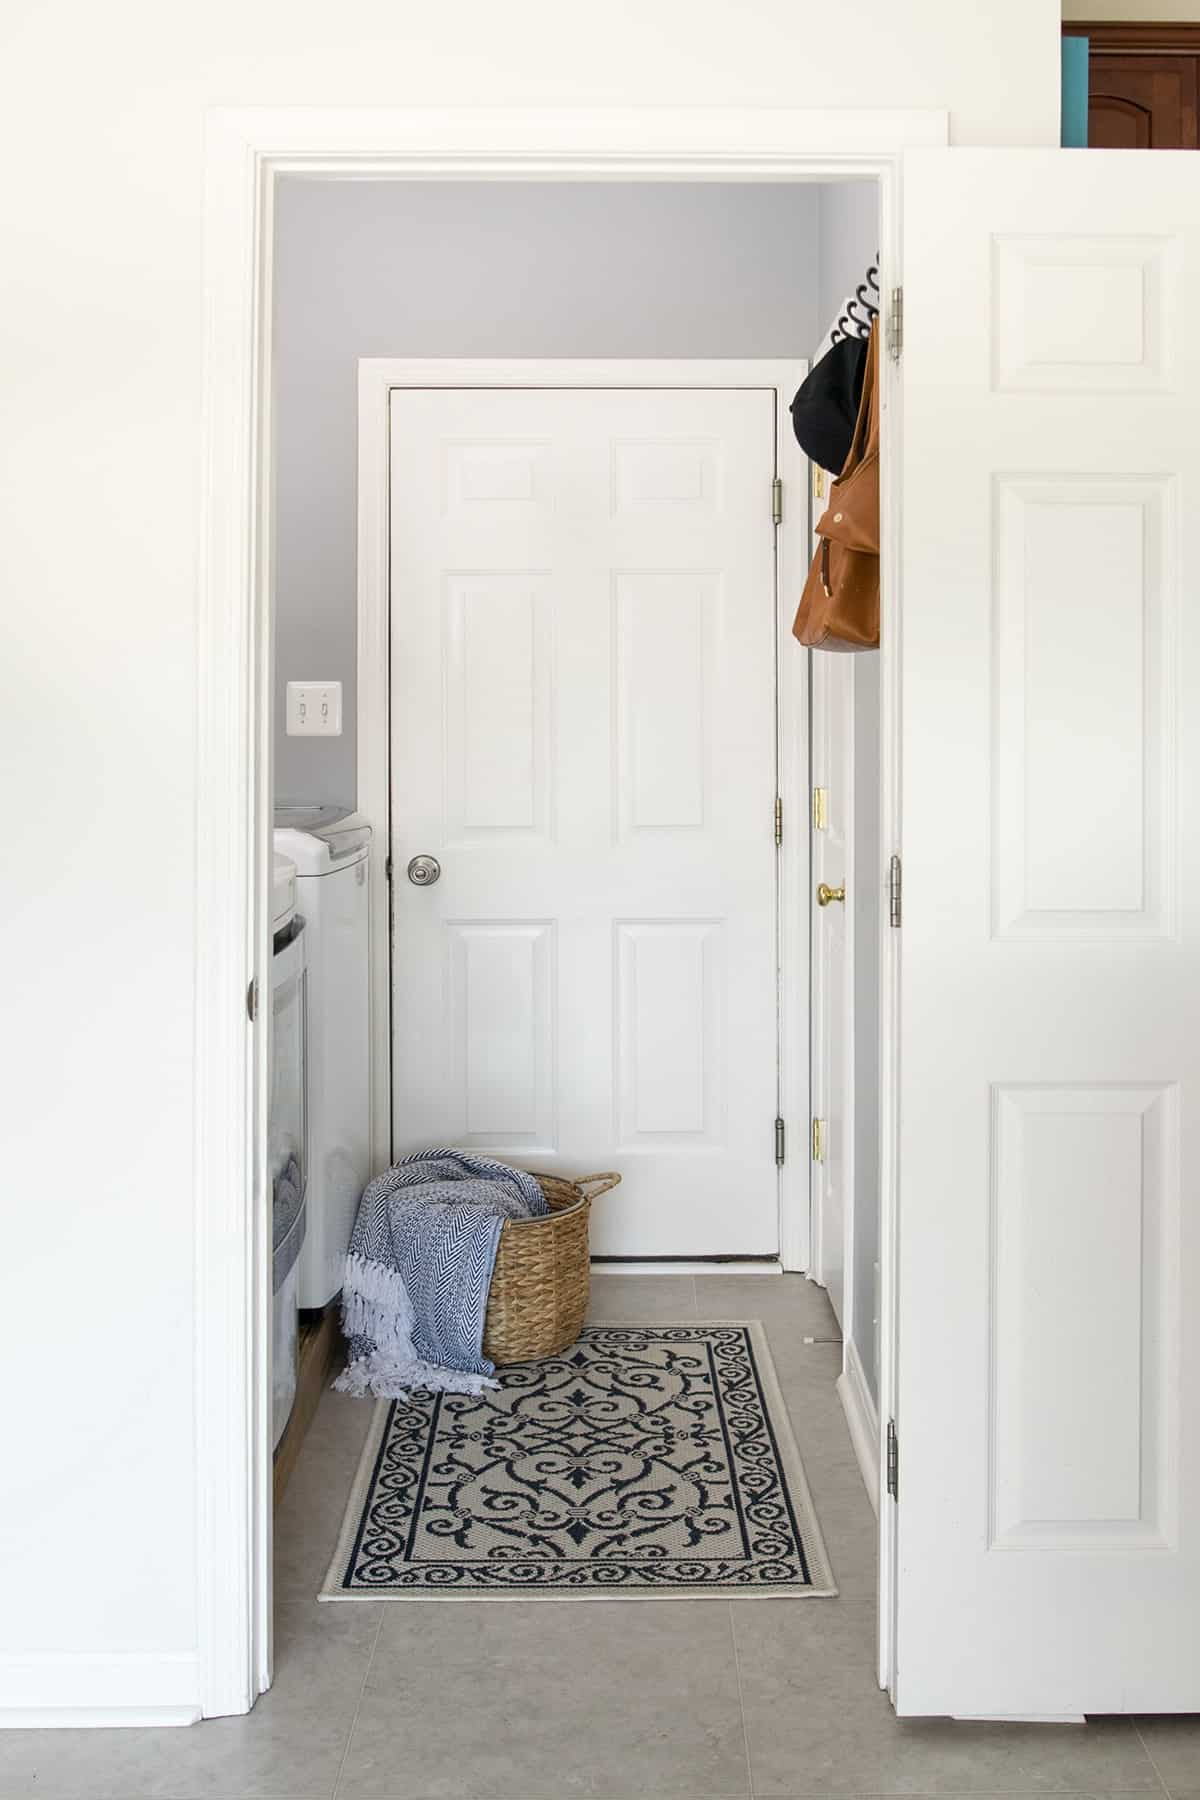 Laundry room entryway. Decorative throw rug rattan basket, gray wall paint.